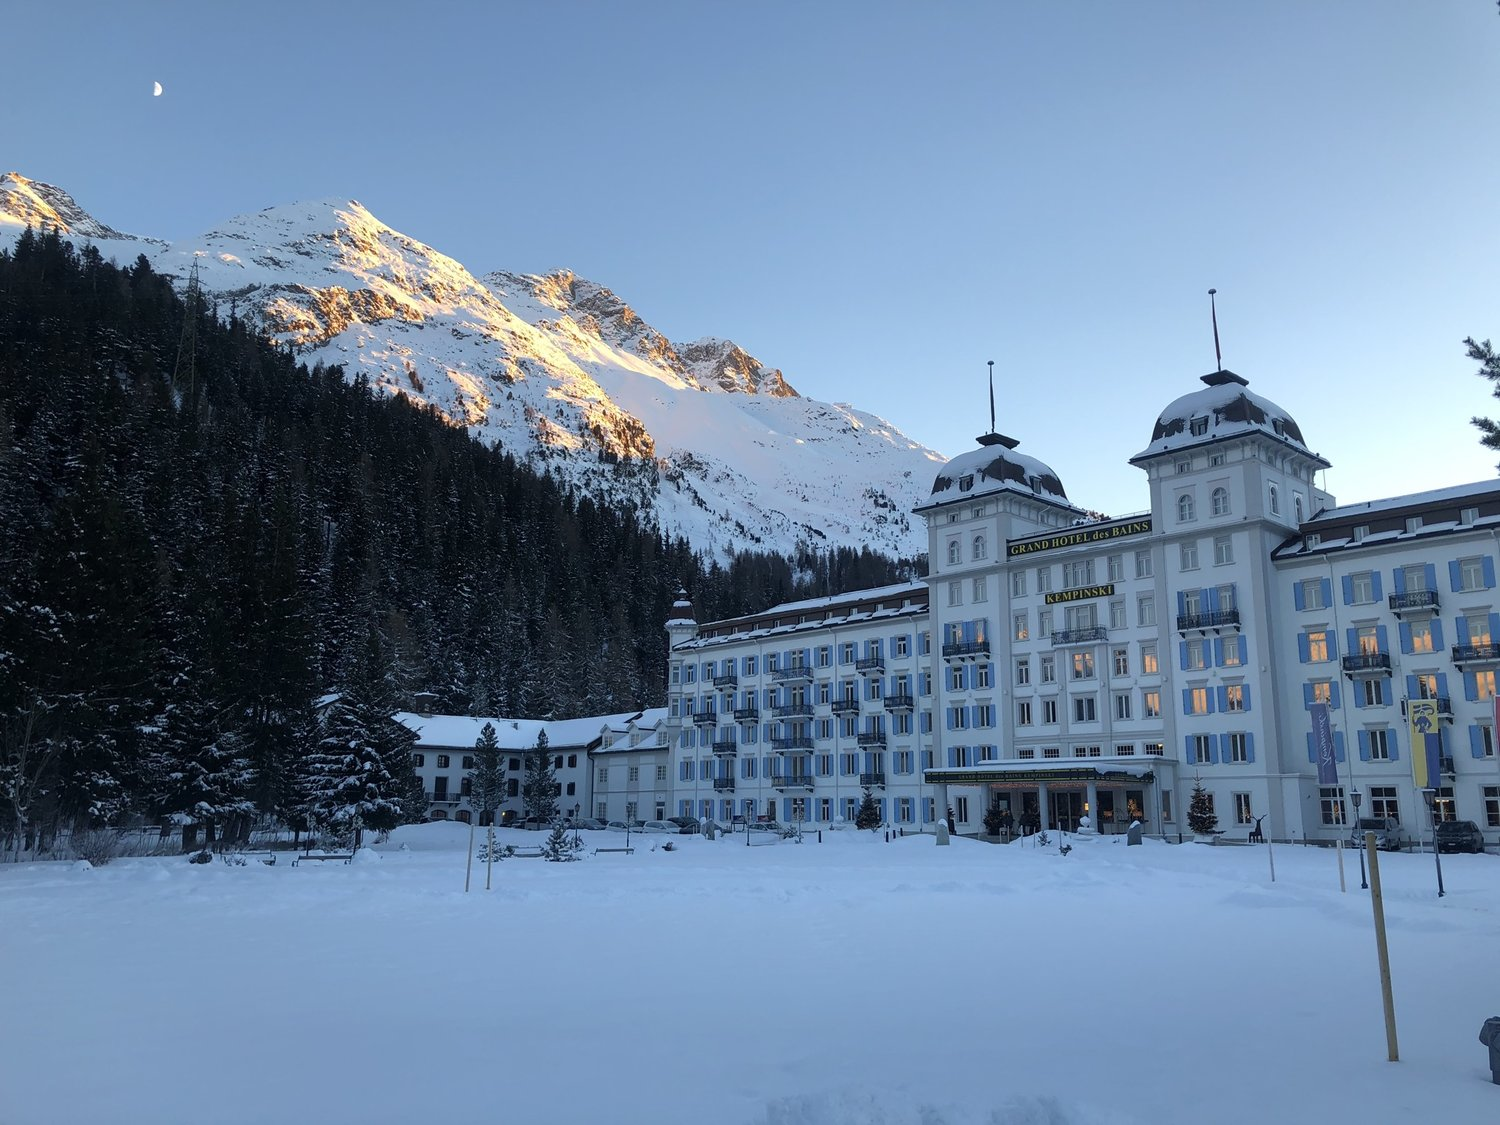 Review - Grand Hotel des Bains Kempinski - Festive Season in St. Moritz — Continental Traveller